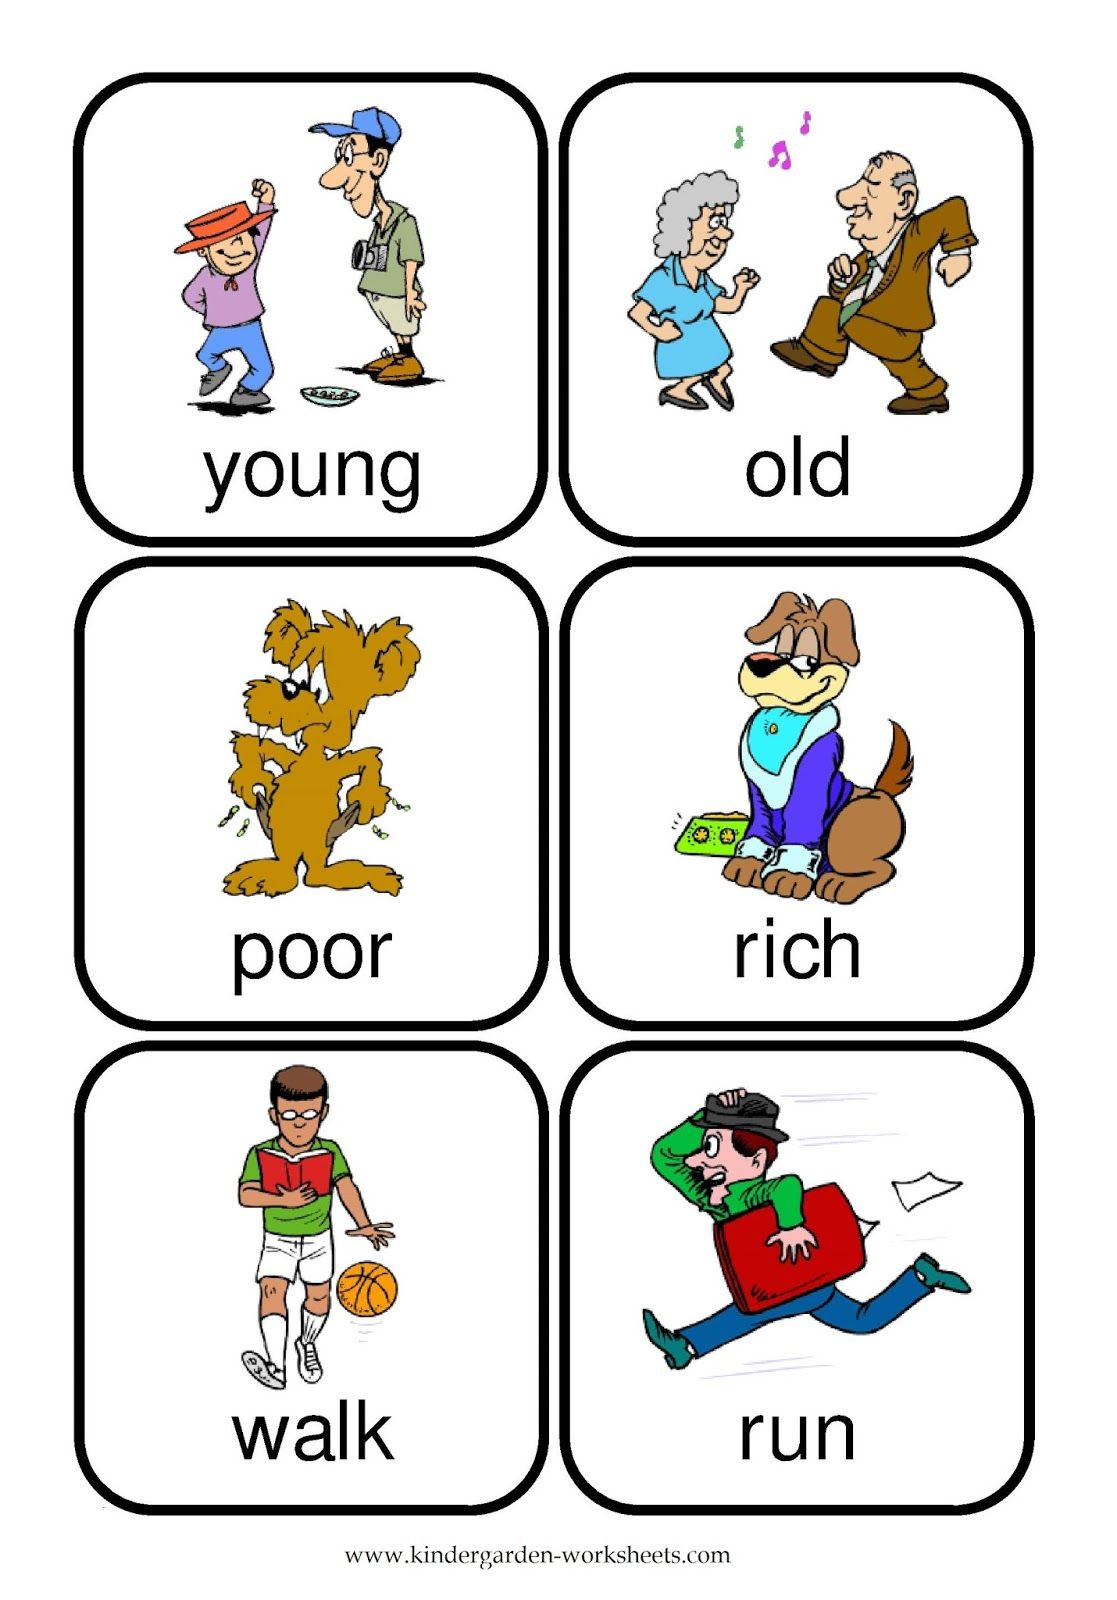 Daycare Clipart Preschool Word Daycare Preschool Word